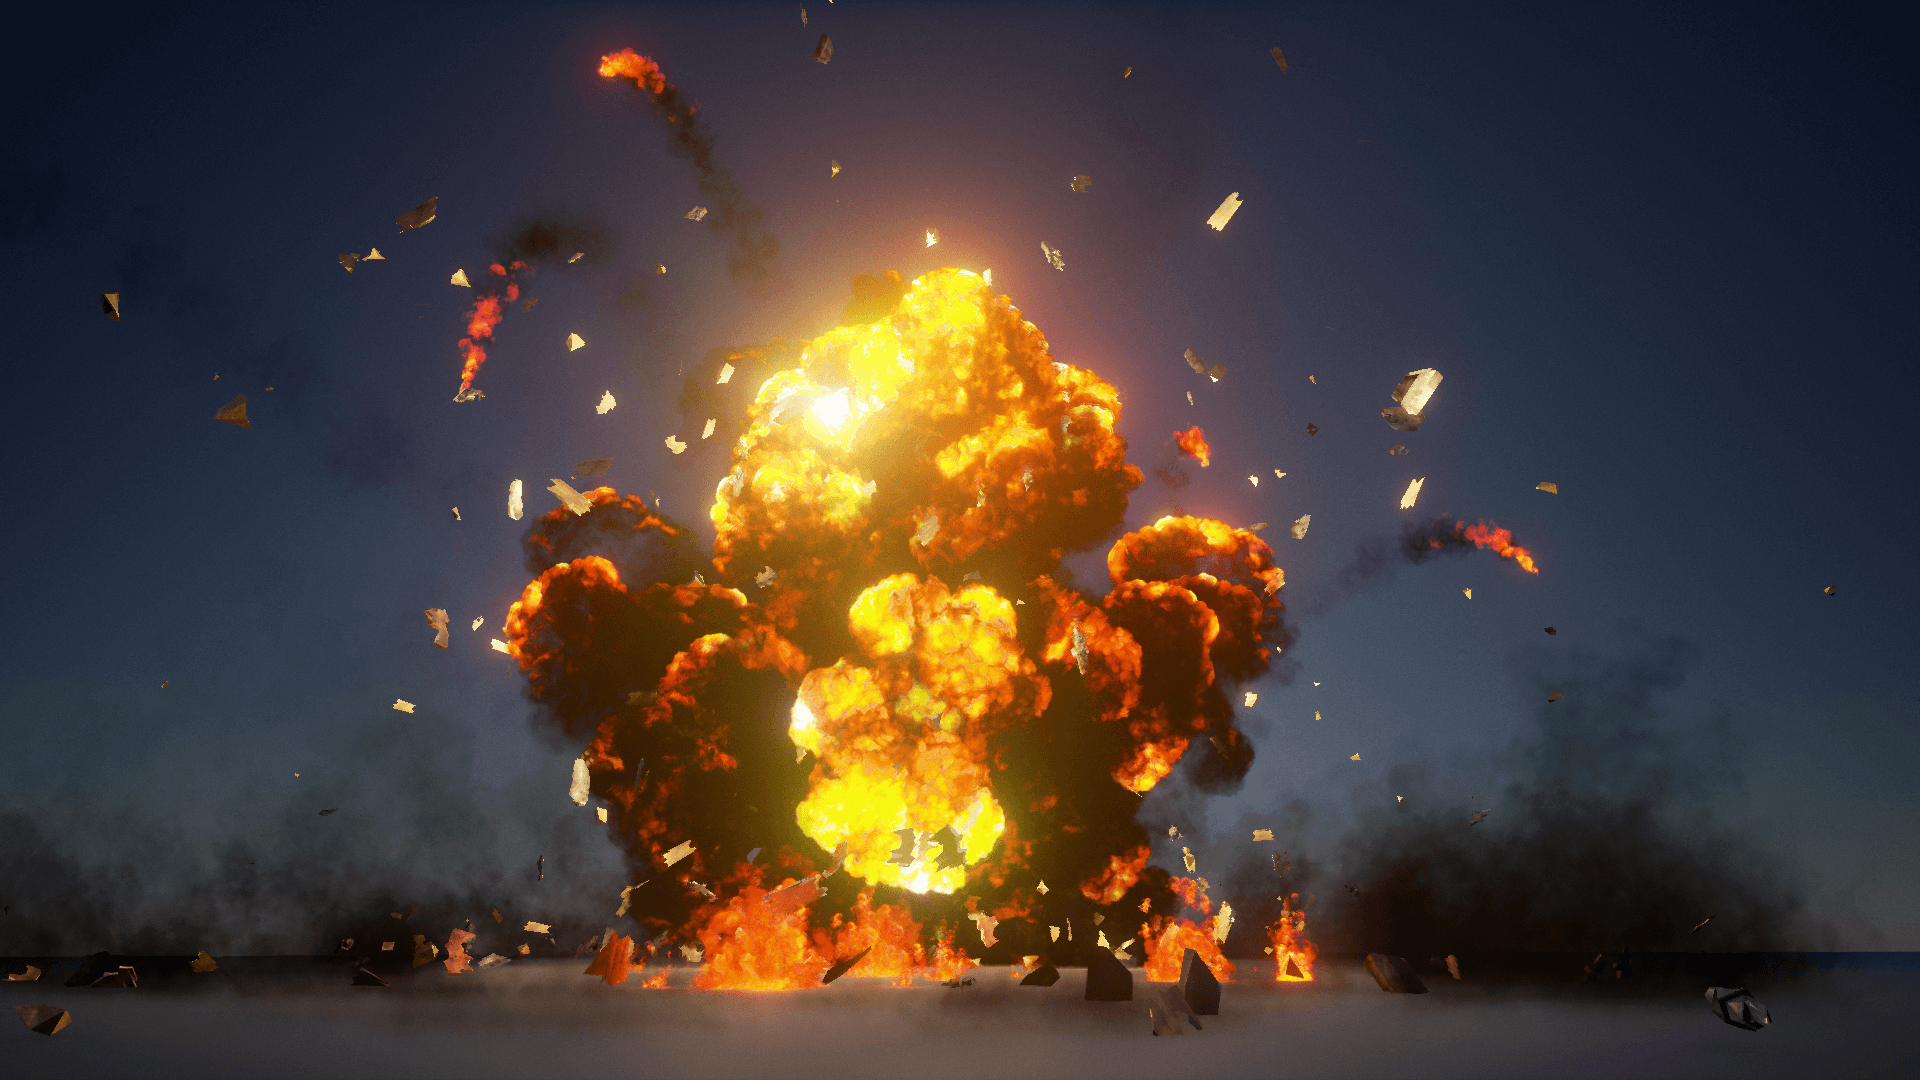 The Explosions Mega Pack by Advanced Asset Packs in Visual Effects